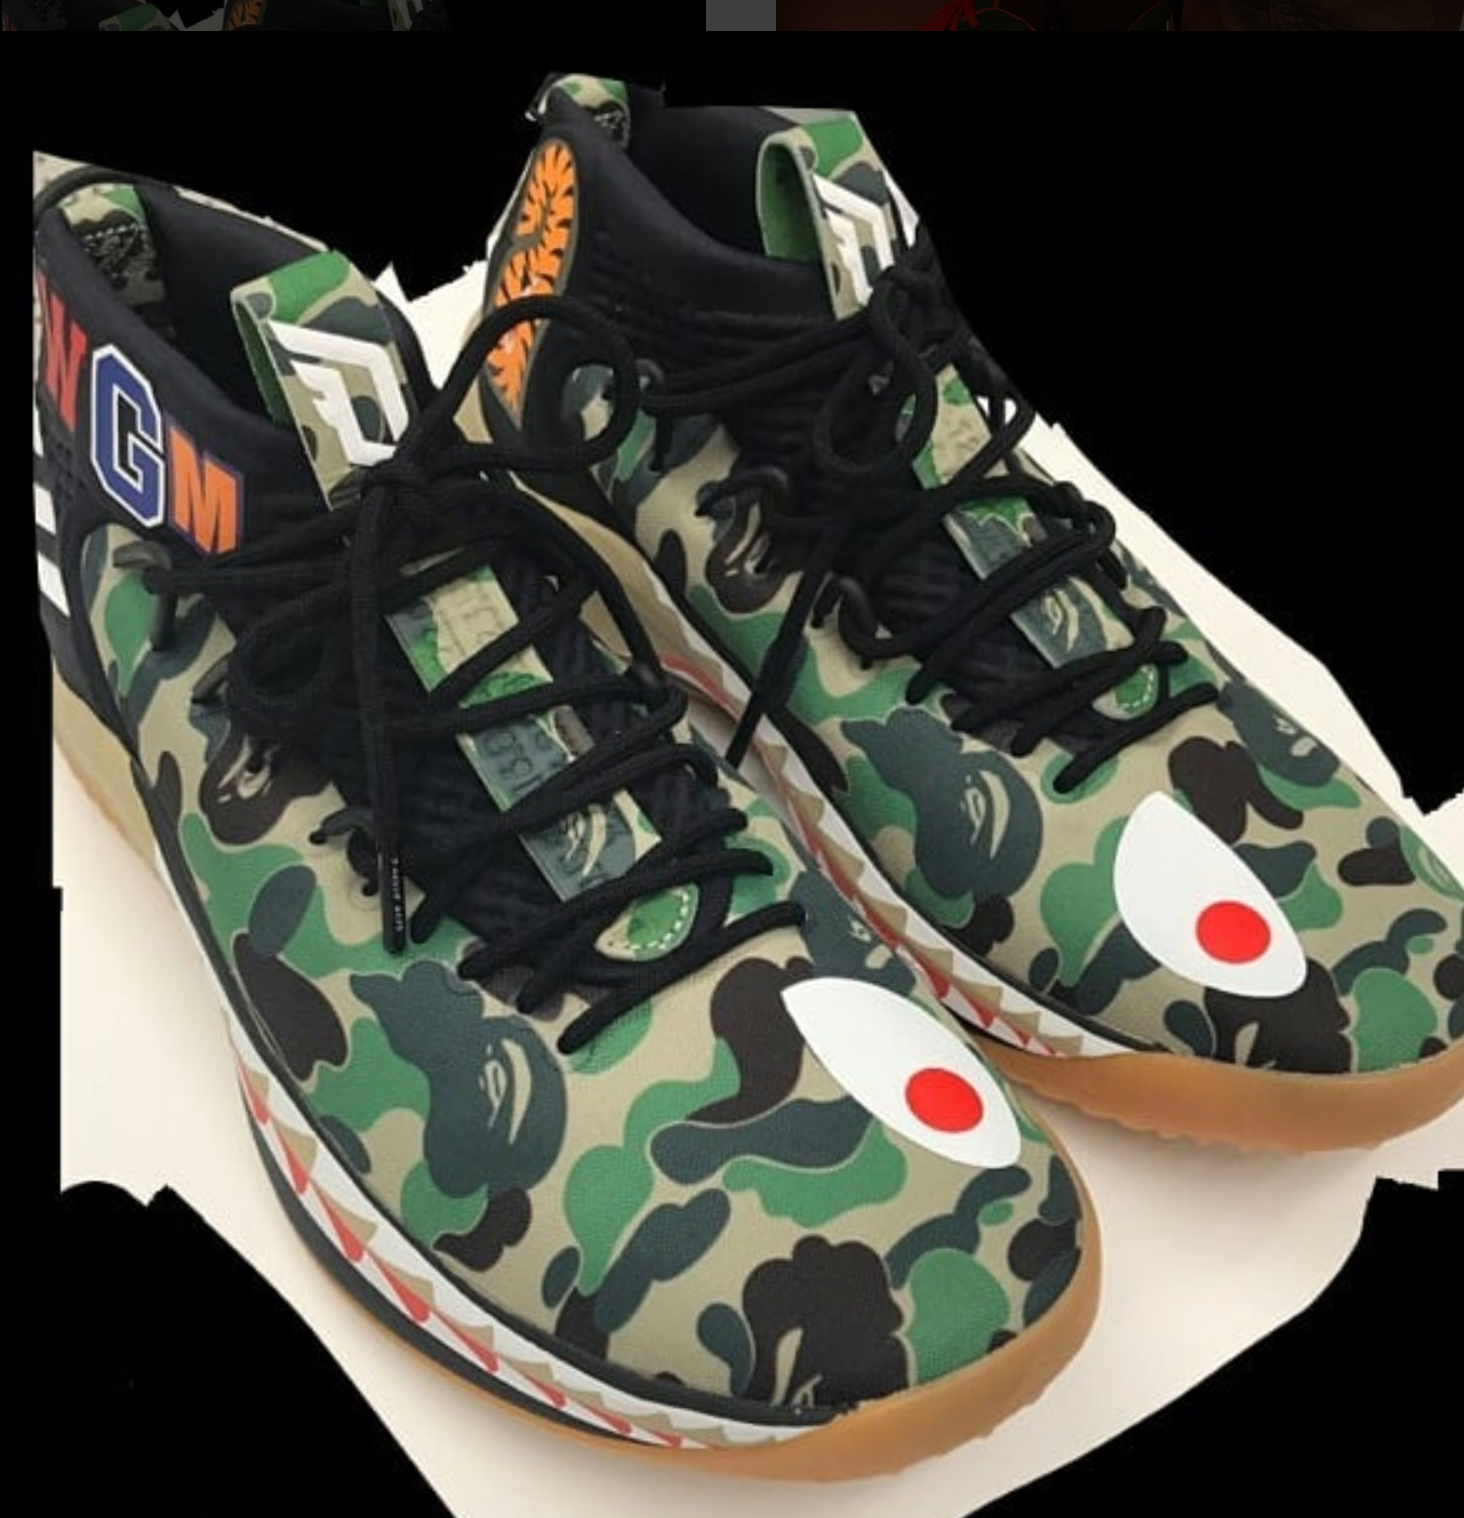 the best attitude ac1c0 8239d This Could Be One of the BAPE Dame 4 Colorways - WearTesters